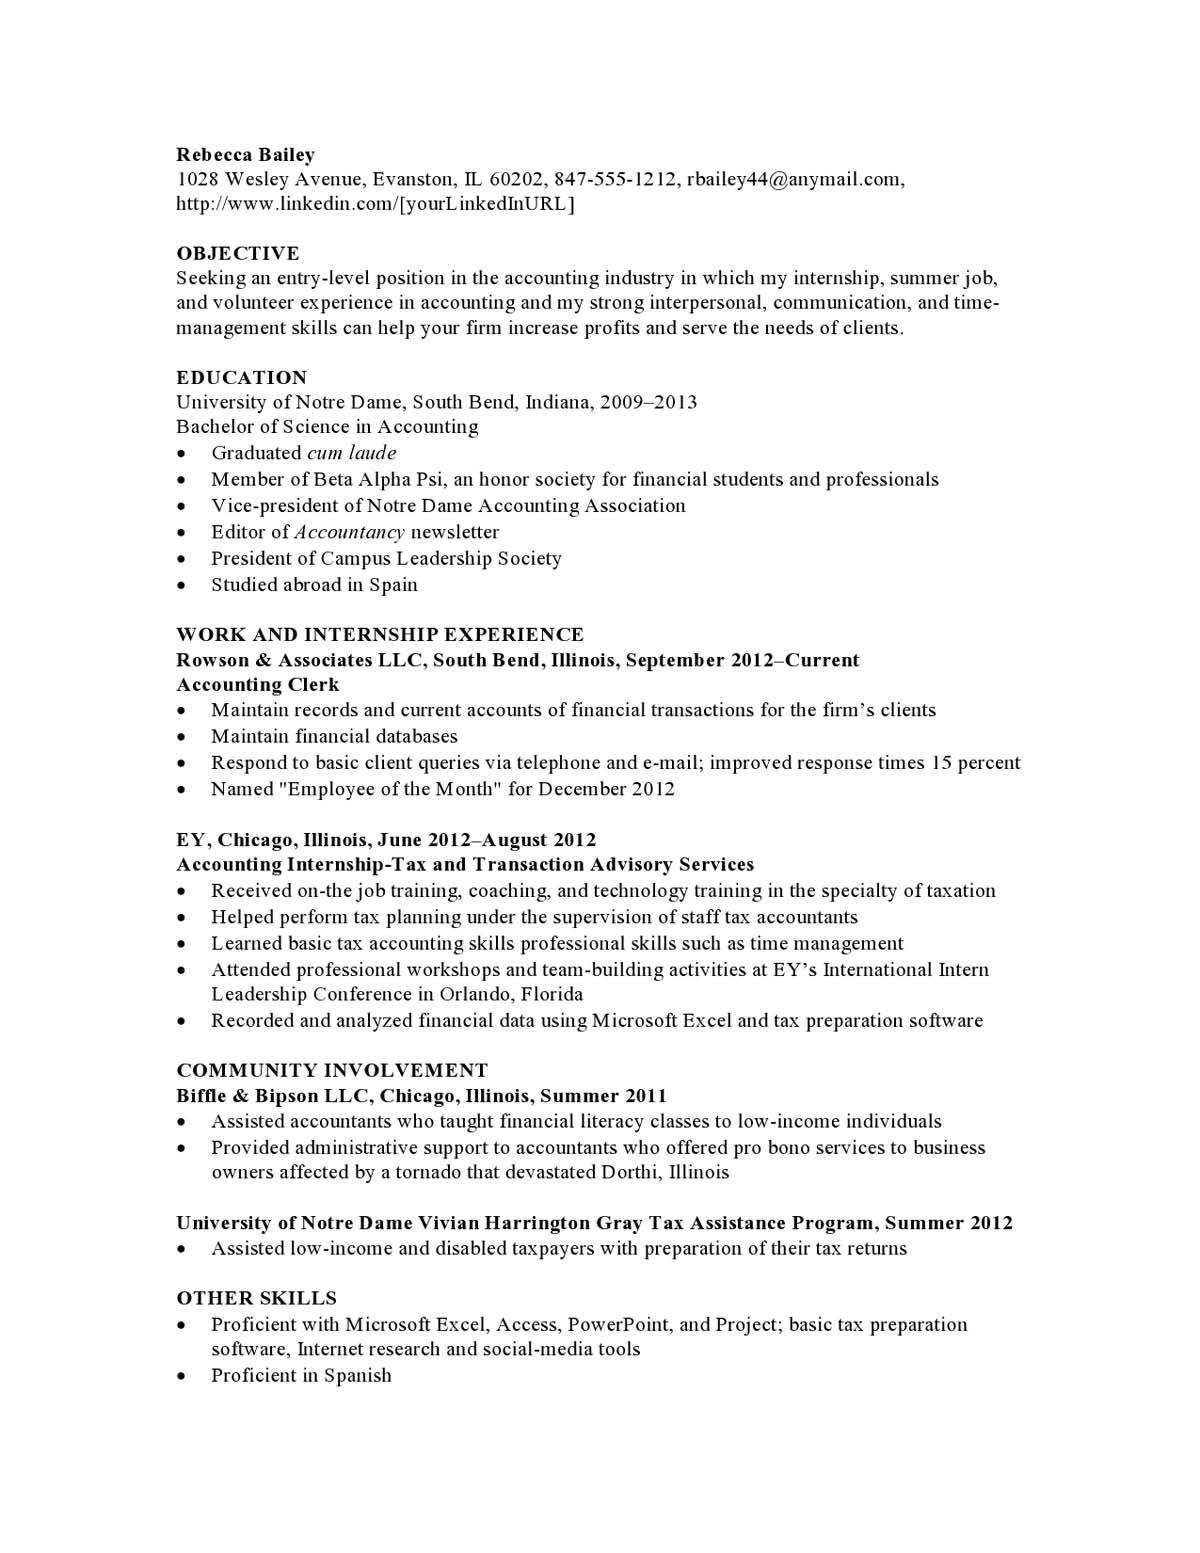 resume samples templates examples vault entry level crescoact19 technical skills for Resume Entry Level Resume Samples